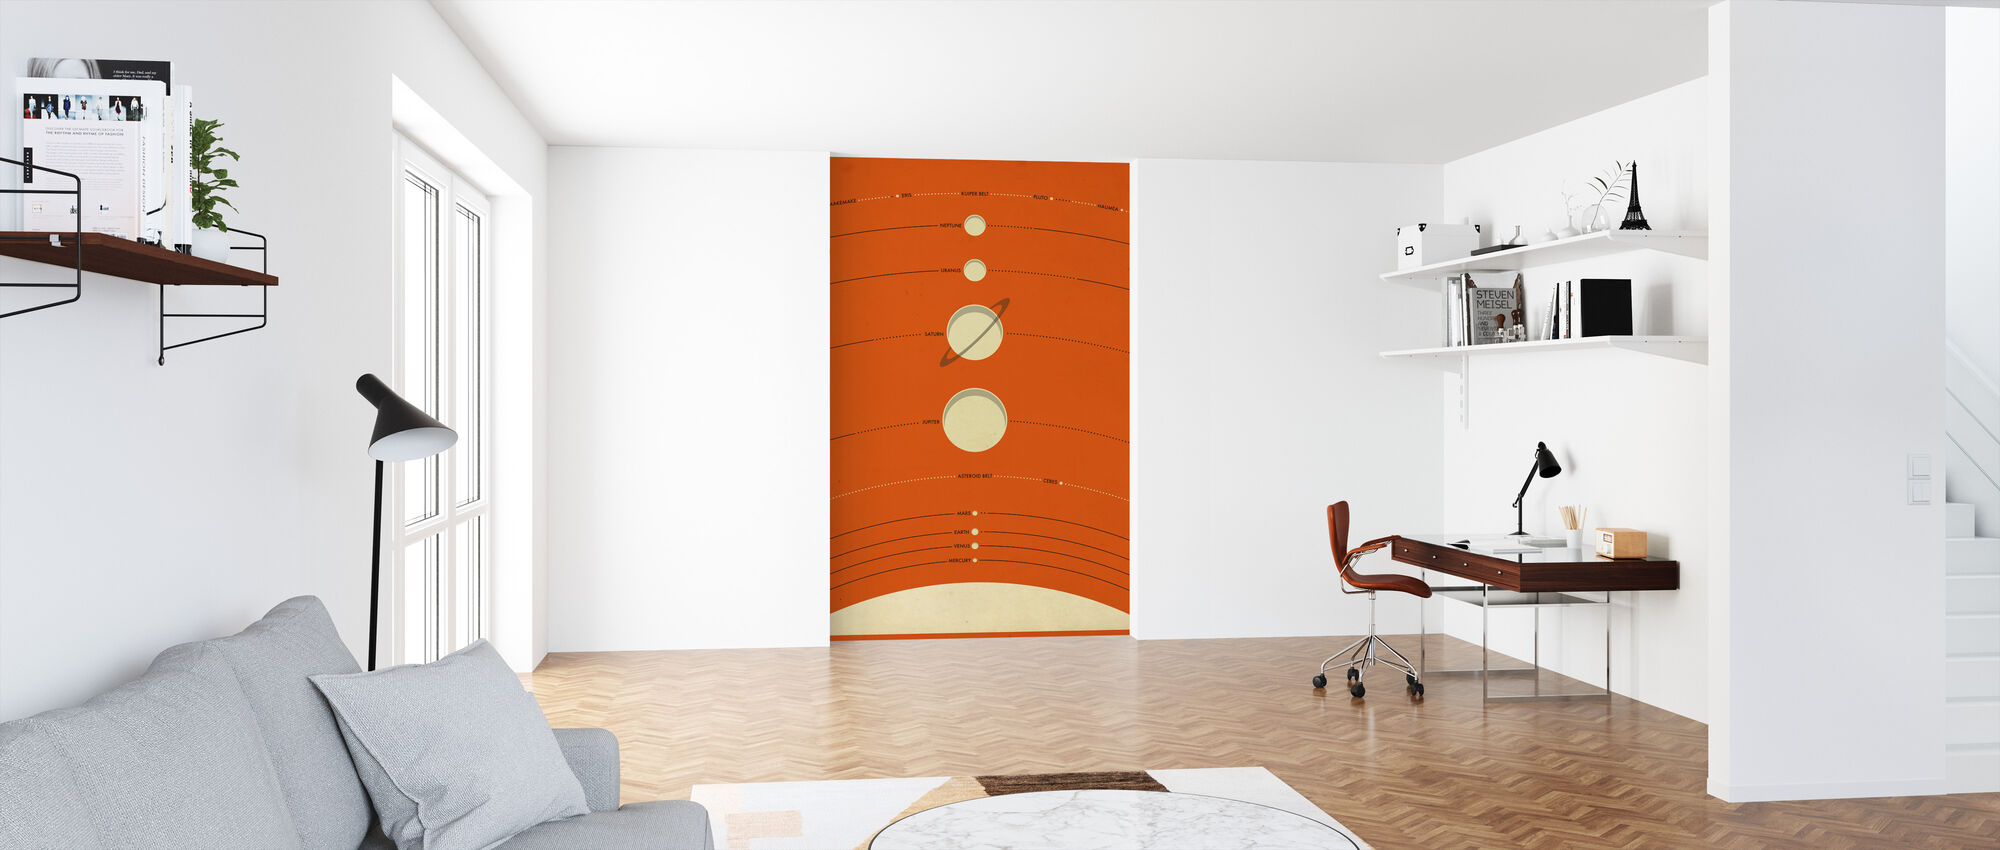 Solar System - Orange - Wallpaper - Office